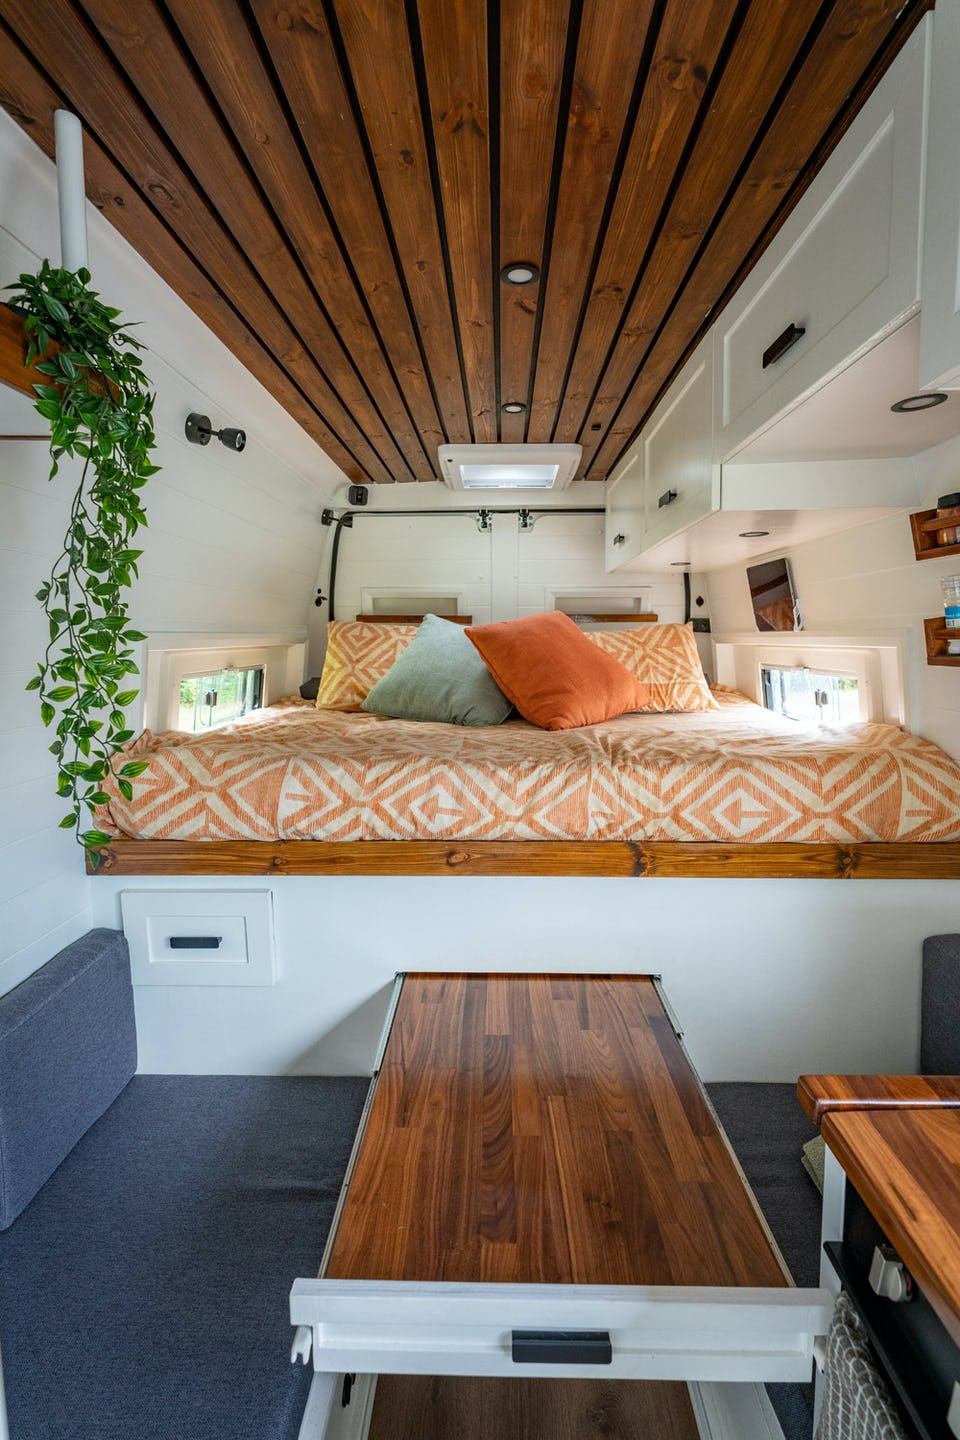 Van conversion with pull out table